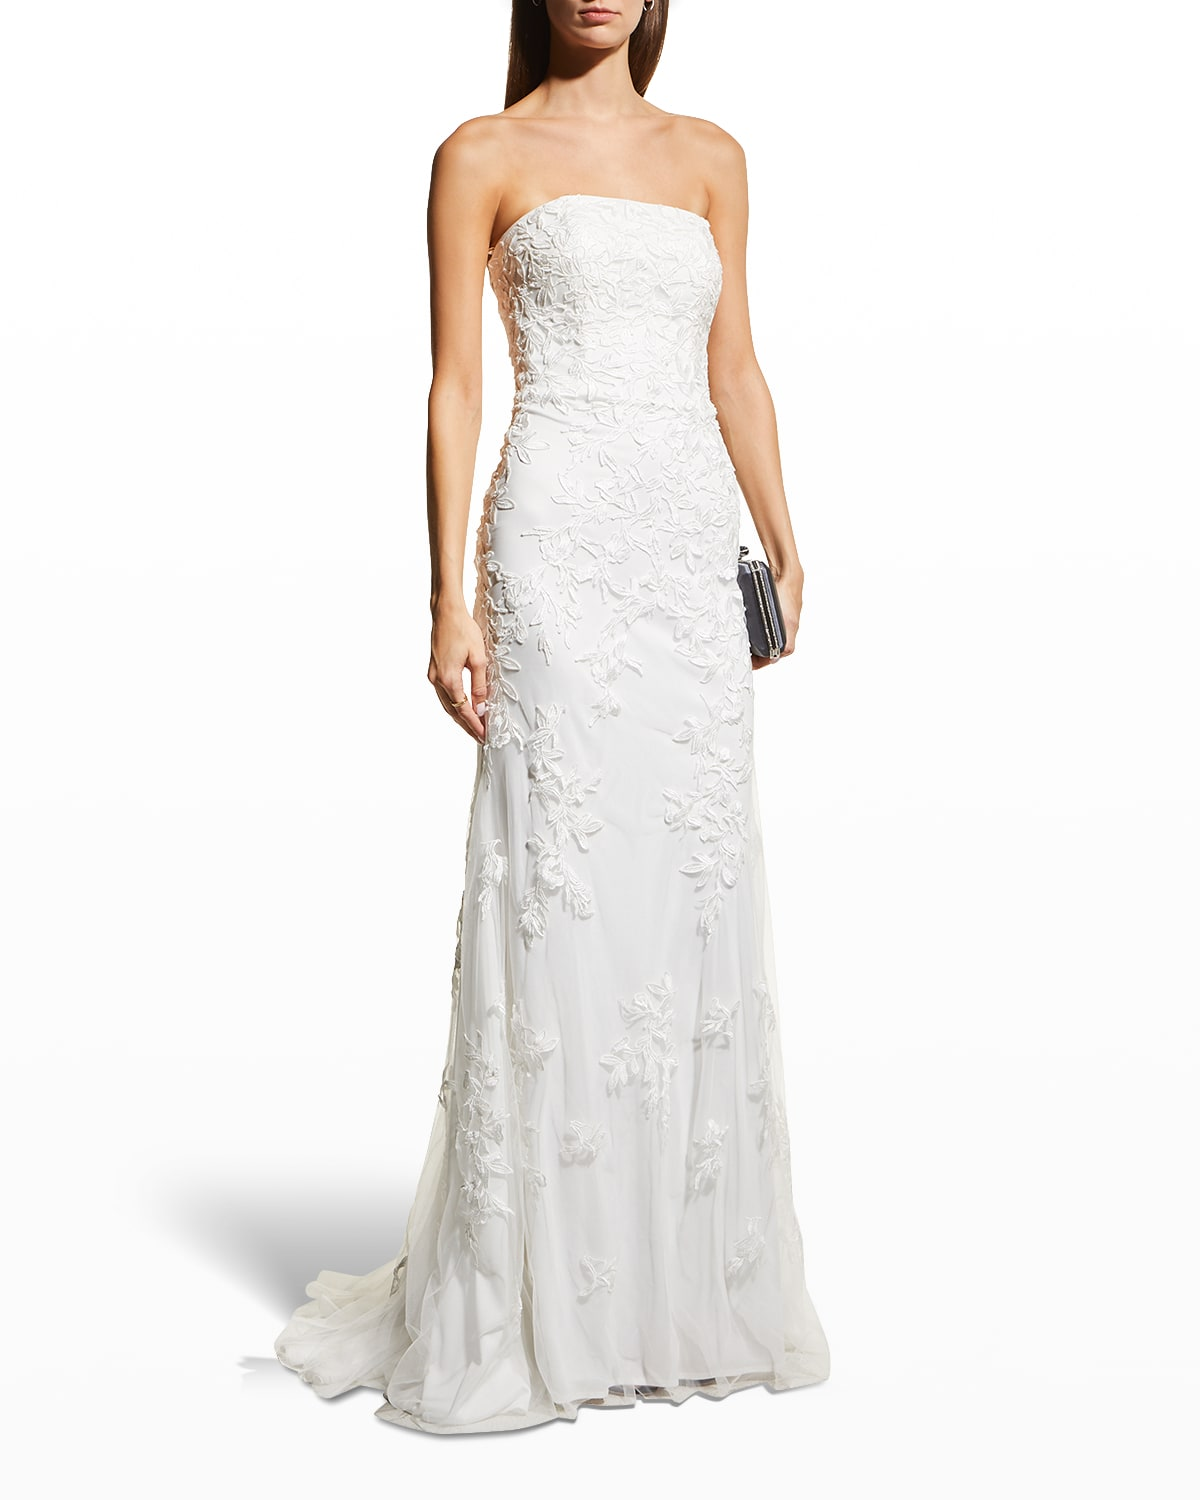 Strapless Lace Tulle Gown w/ Lace-Up Back